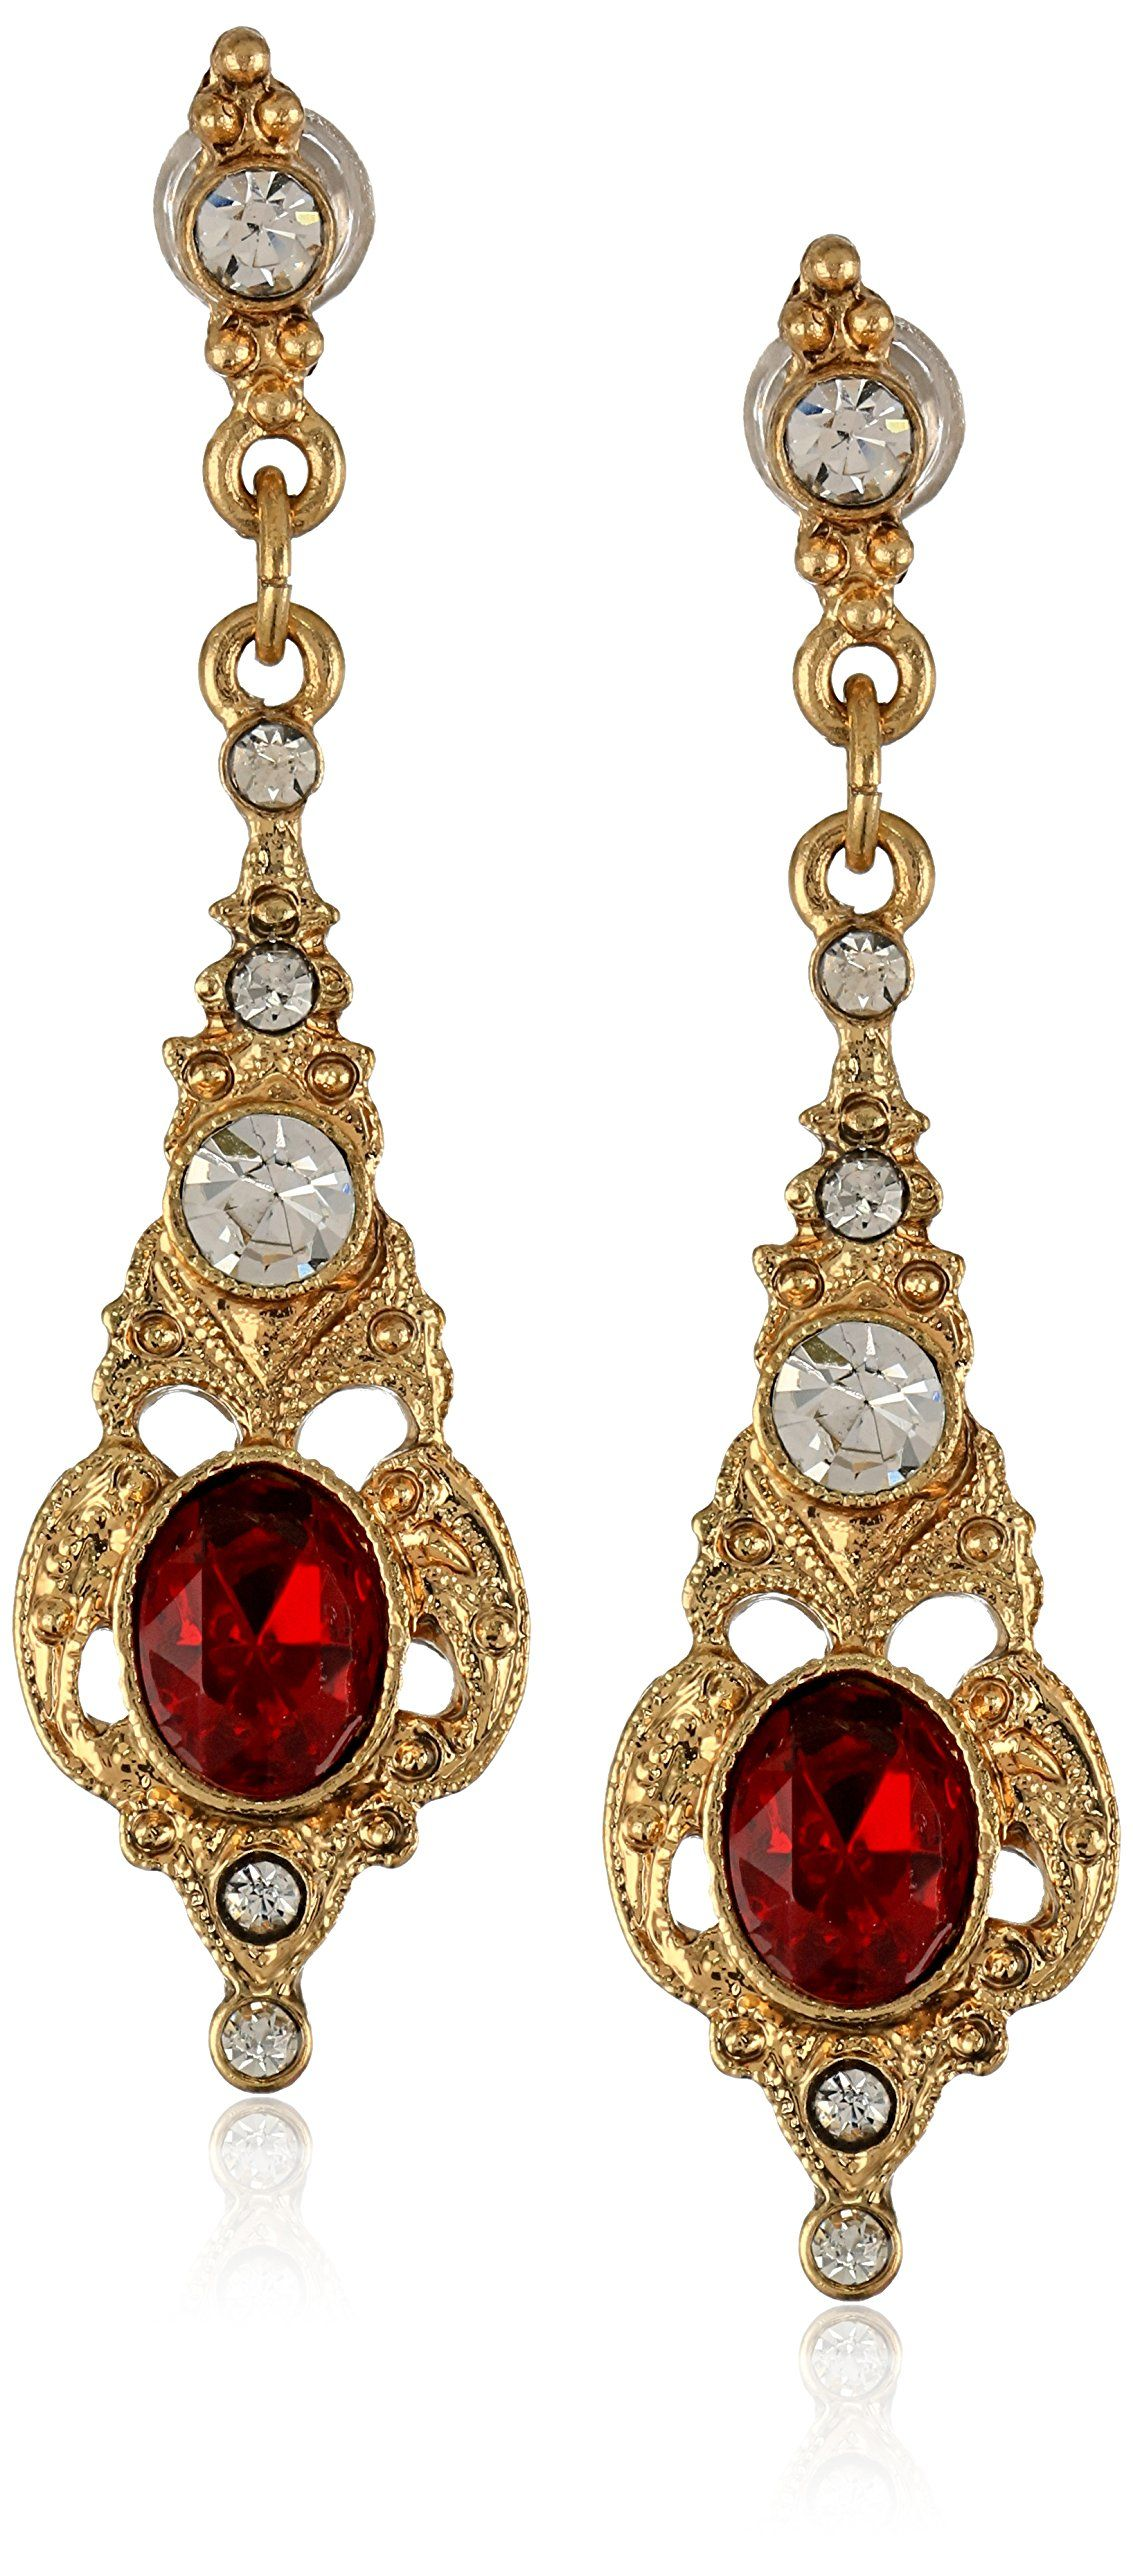 Downton Abbey Jeweled Heirlooms Carded Crystal Drop Earrings upsPxM